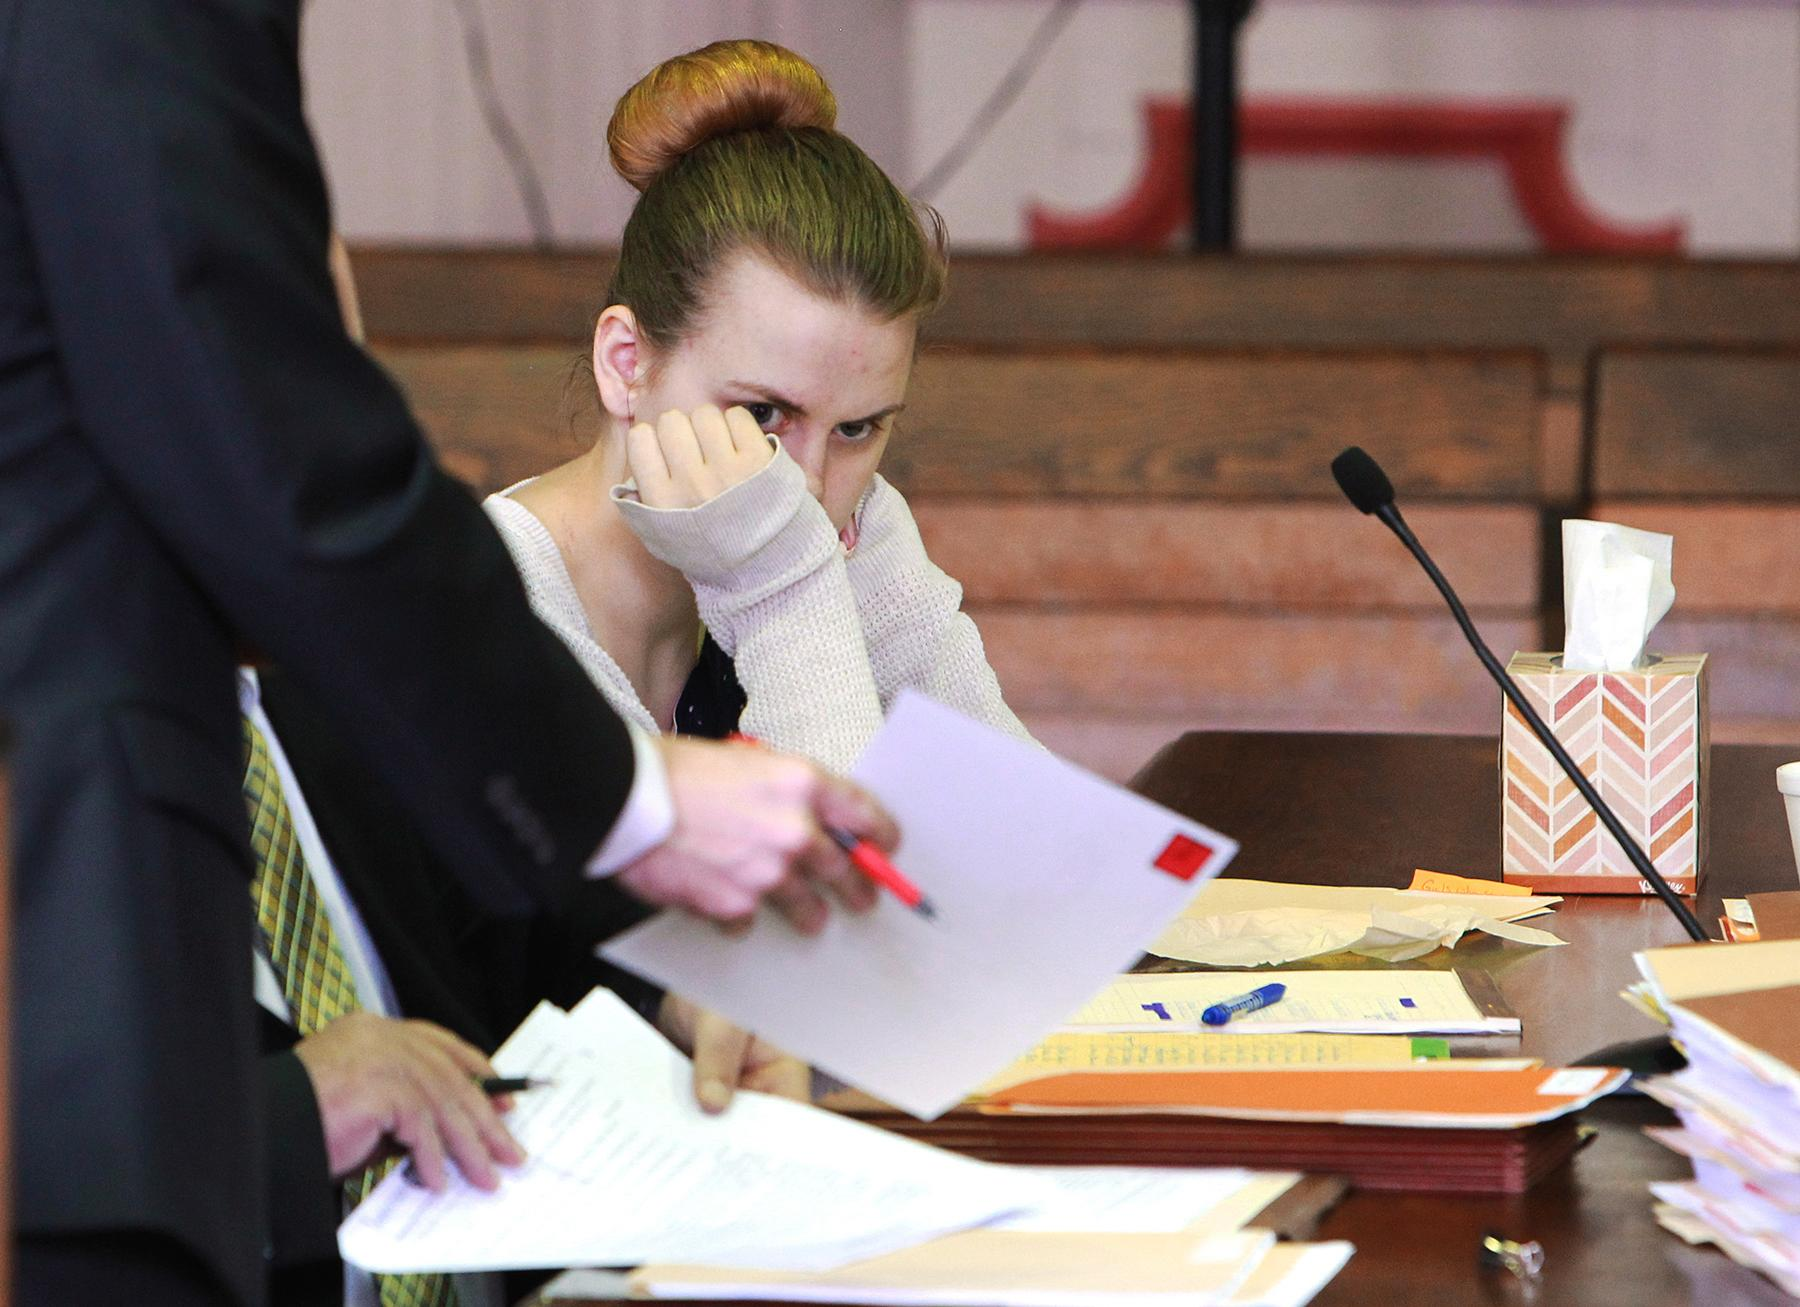 Sorority Sister Who Left Newborn Daughter to Die in Campus Trash Is Jailed for Life